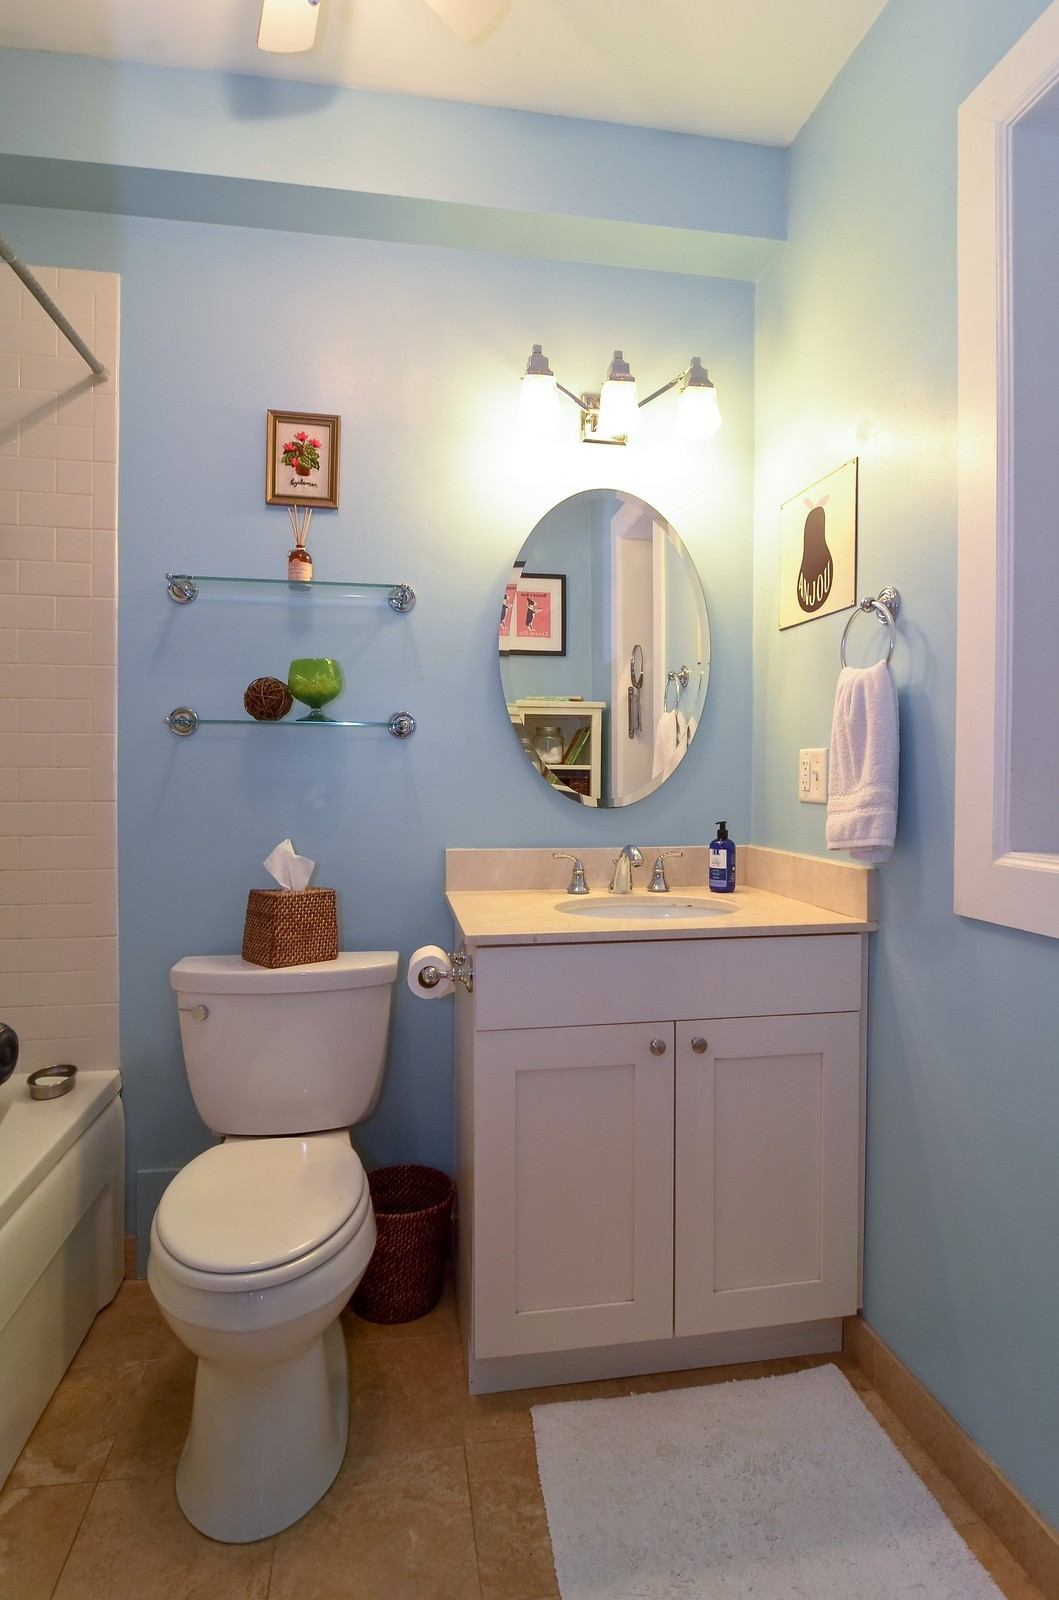 Real Estate Photography - 4901 N. Leavitt, 1B, Chicago, IL, 60625 - Bathroom